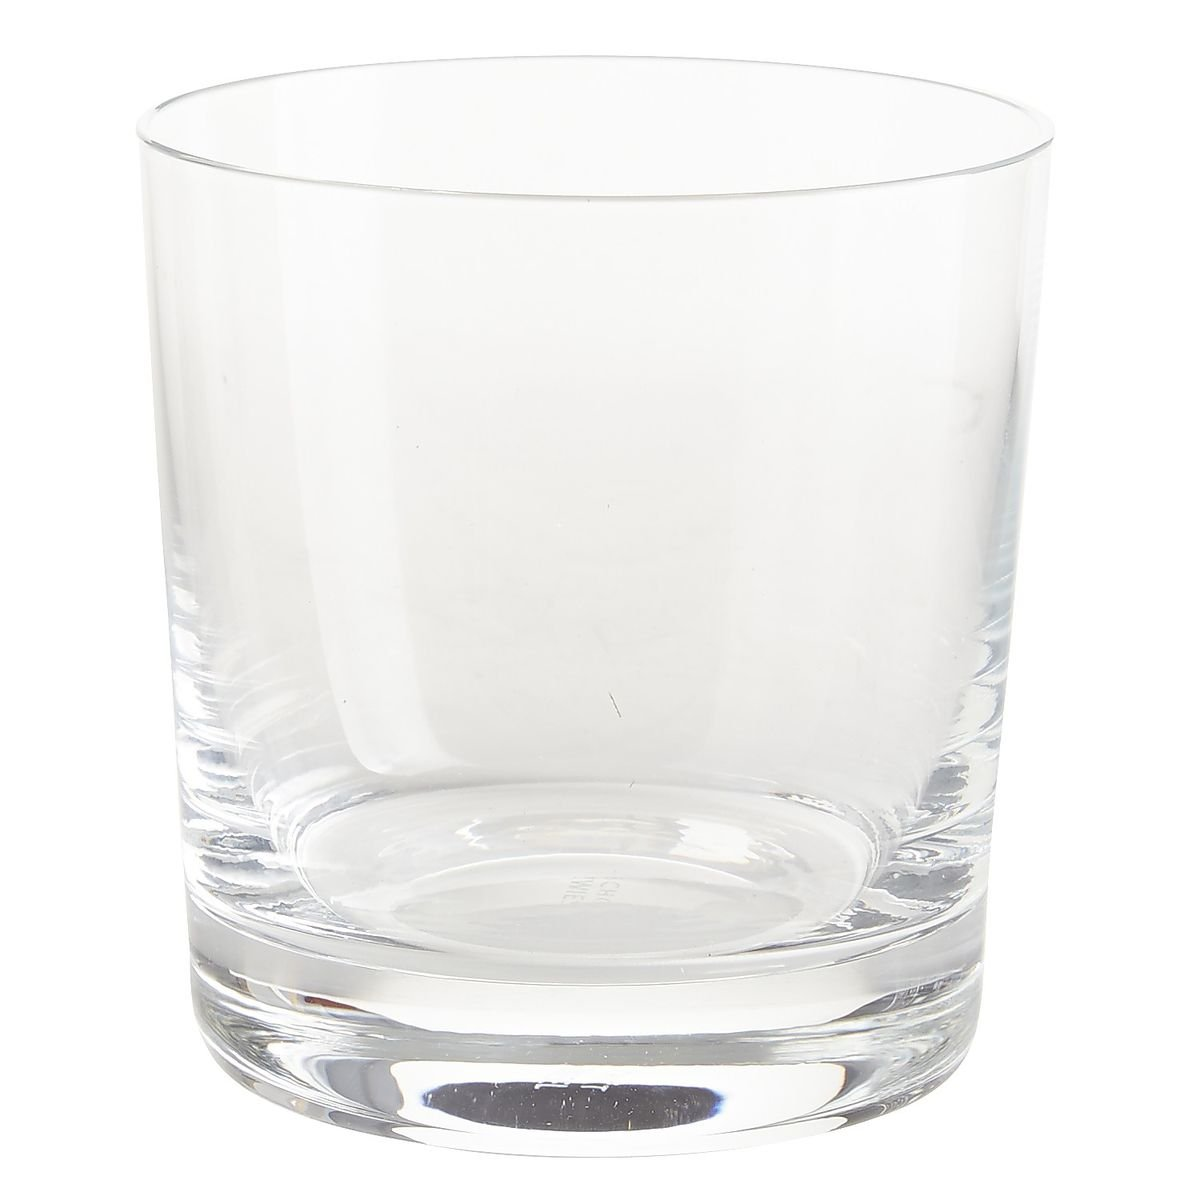 Vaso dof schumann cocktail glass pier 1 sears com mx for Vaso cocktail